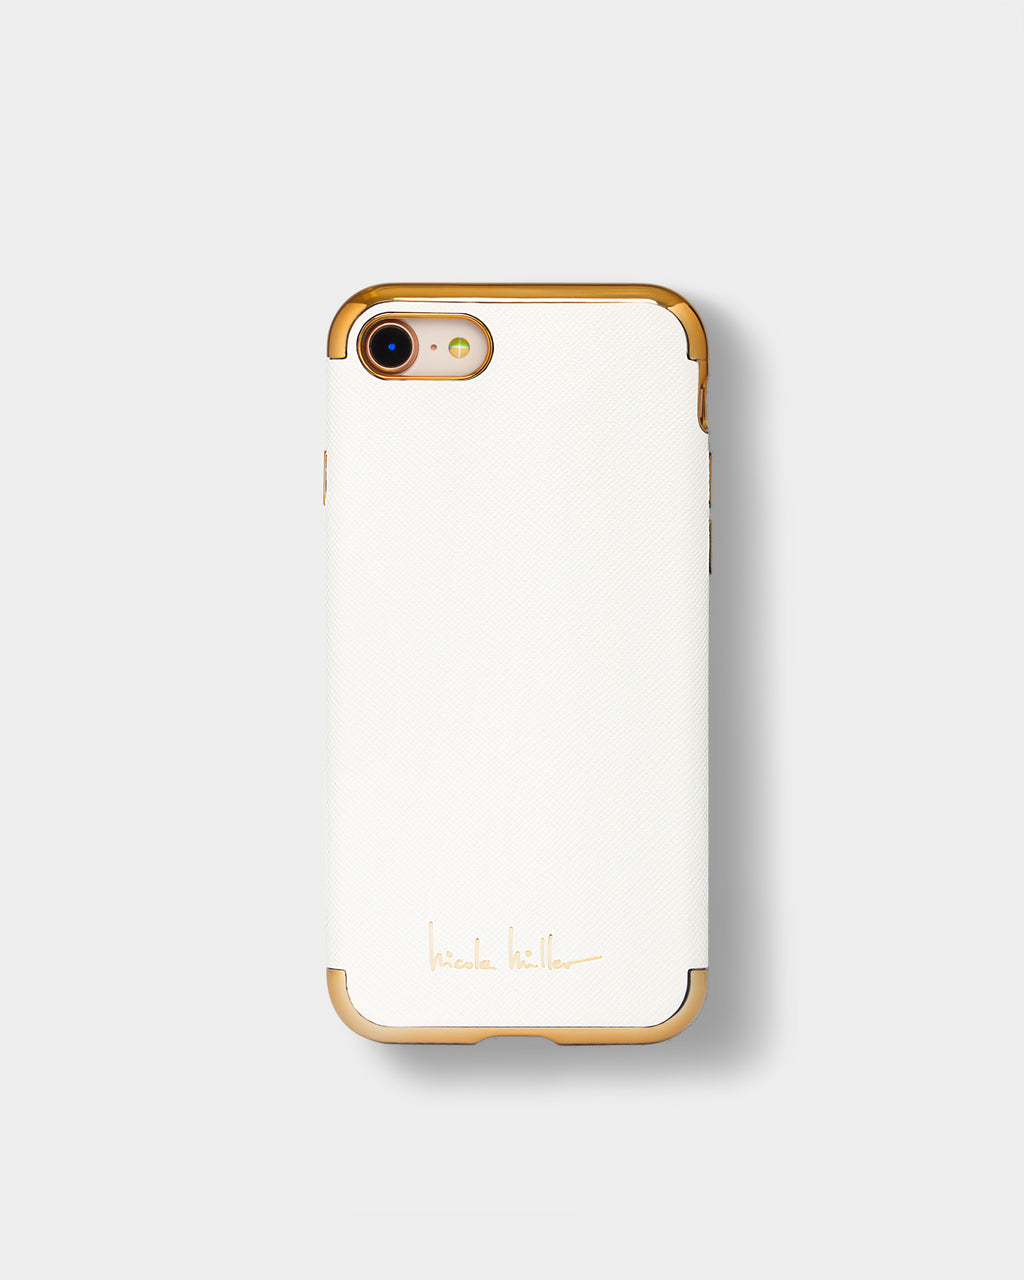 CHWRG01 - WHITE CROSSHATCH IPHONE 6/6s/7/8 case - accessories - fashion tech - IN A WHITE CROSSHATCH, THIS IPHONE CASE IS A MODERN CLASSIC